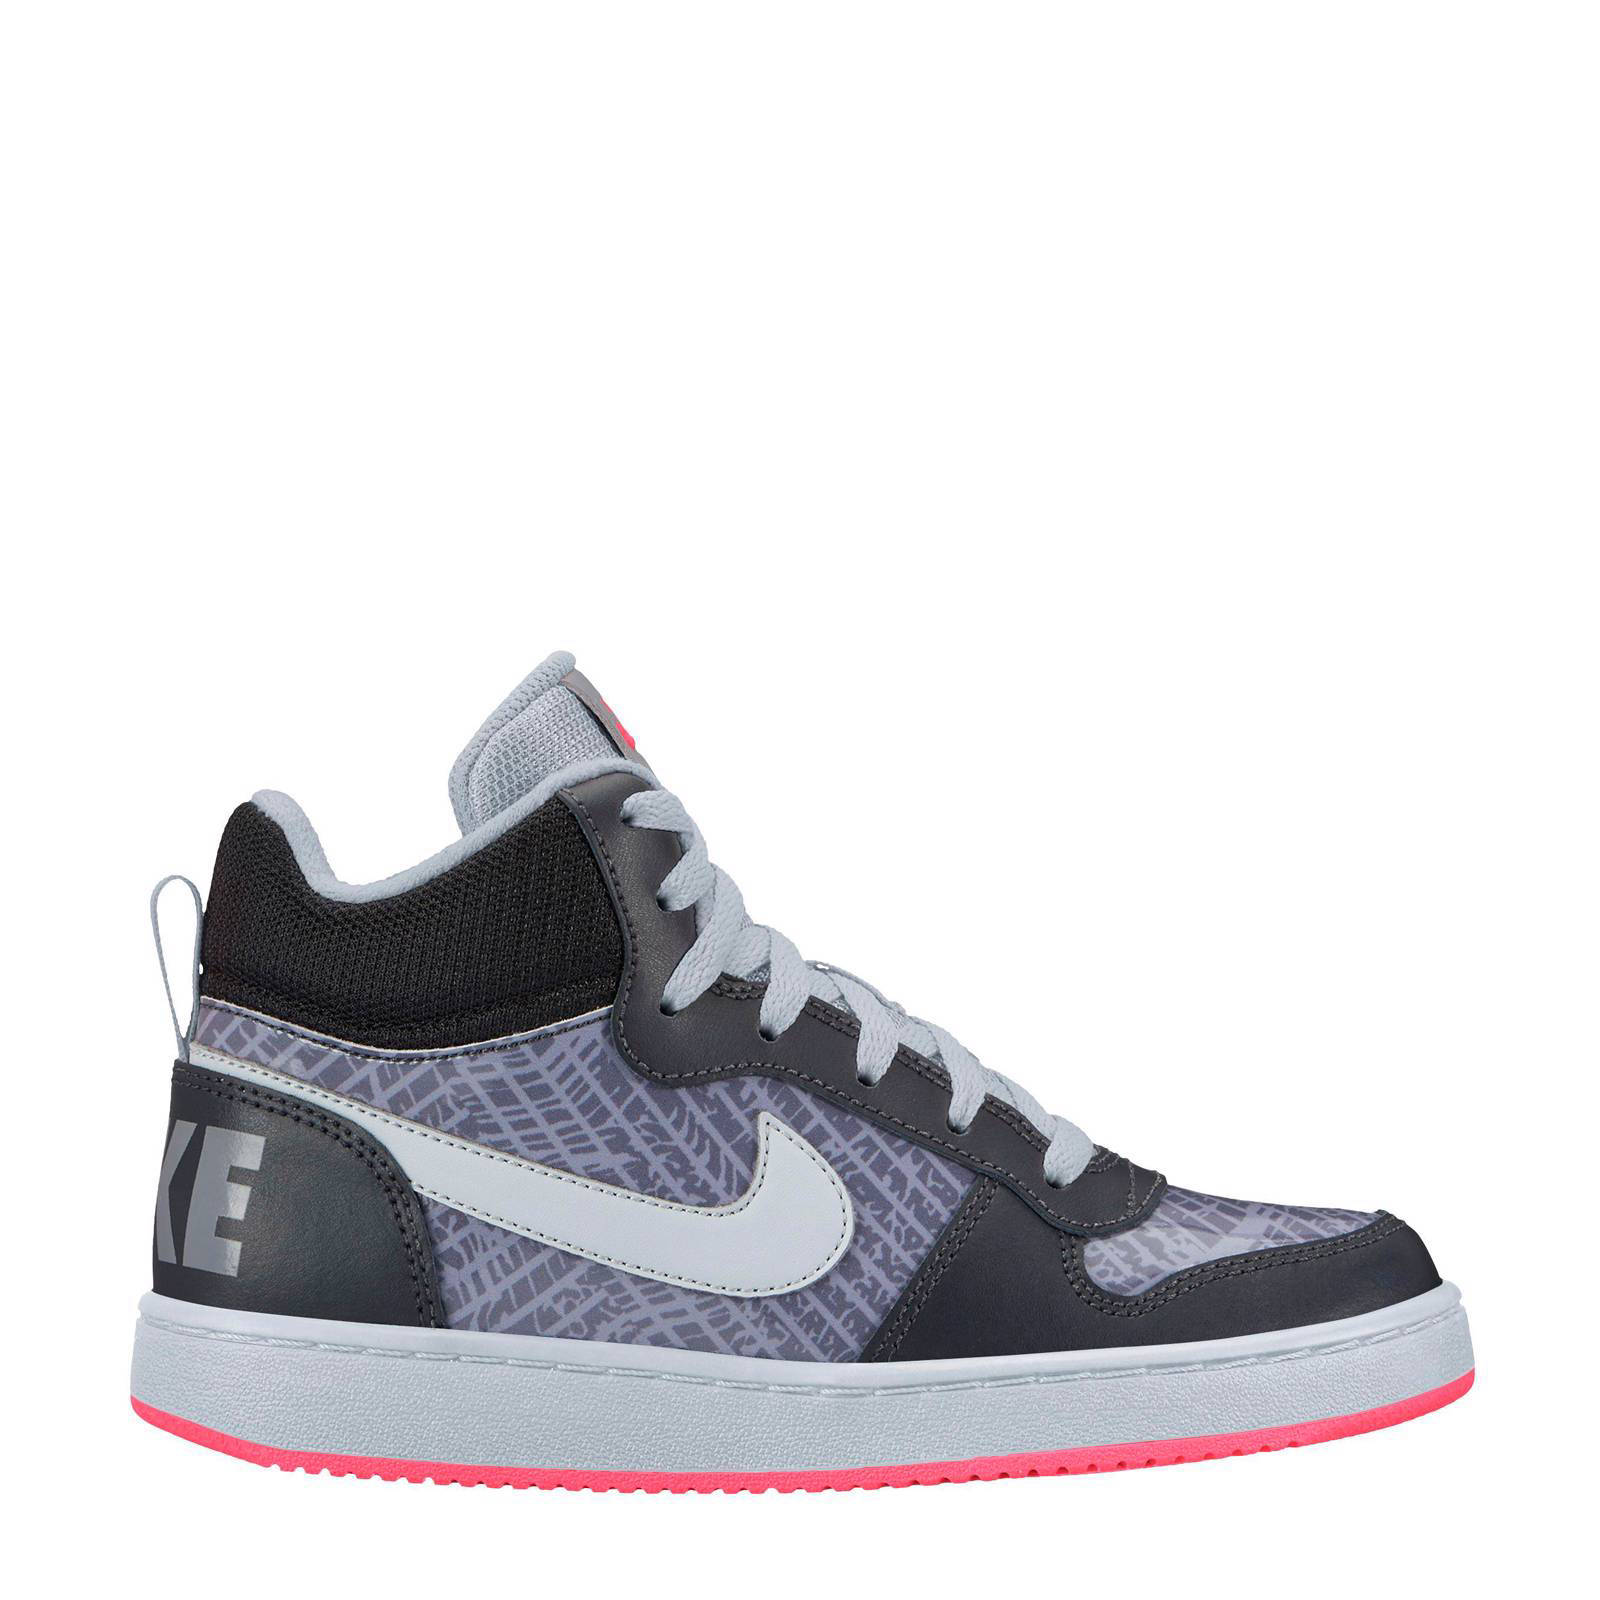 Court Borough mid sneakers